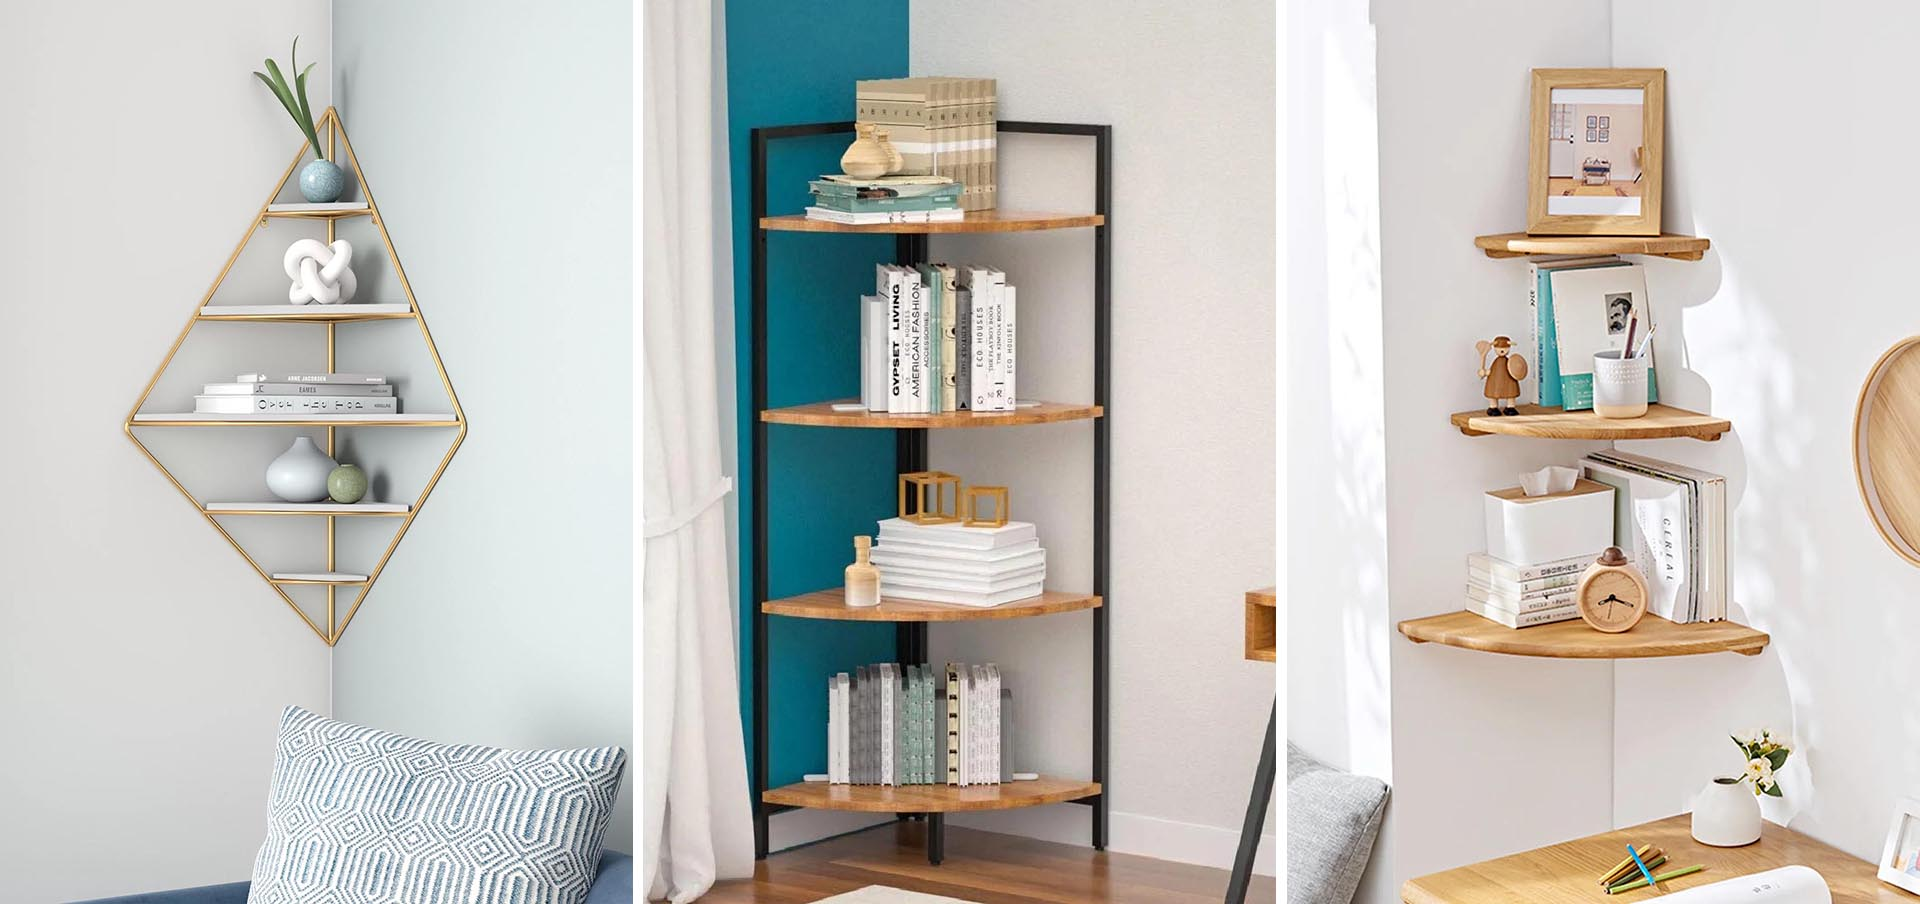 Corners are often overlooked as a place where you can add a design element, and corner shelves are a great idea for an otherwise unused space.